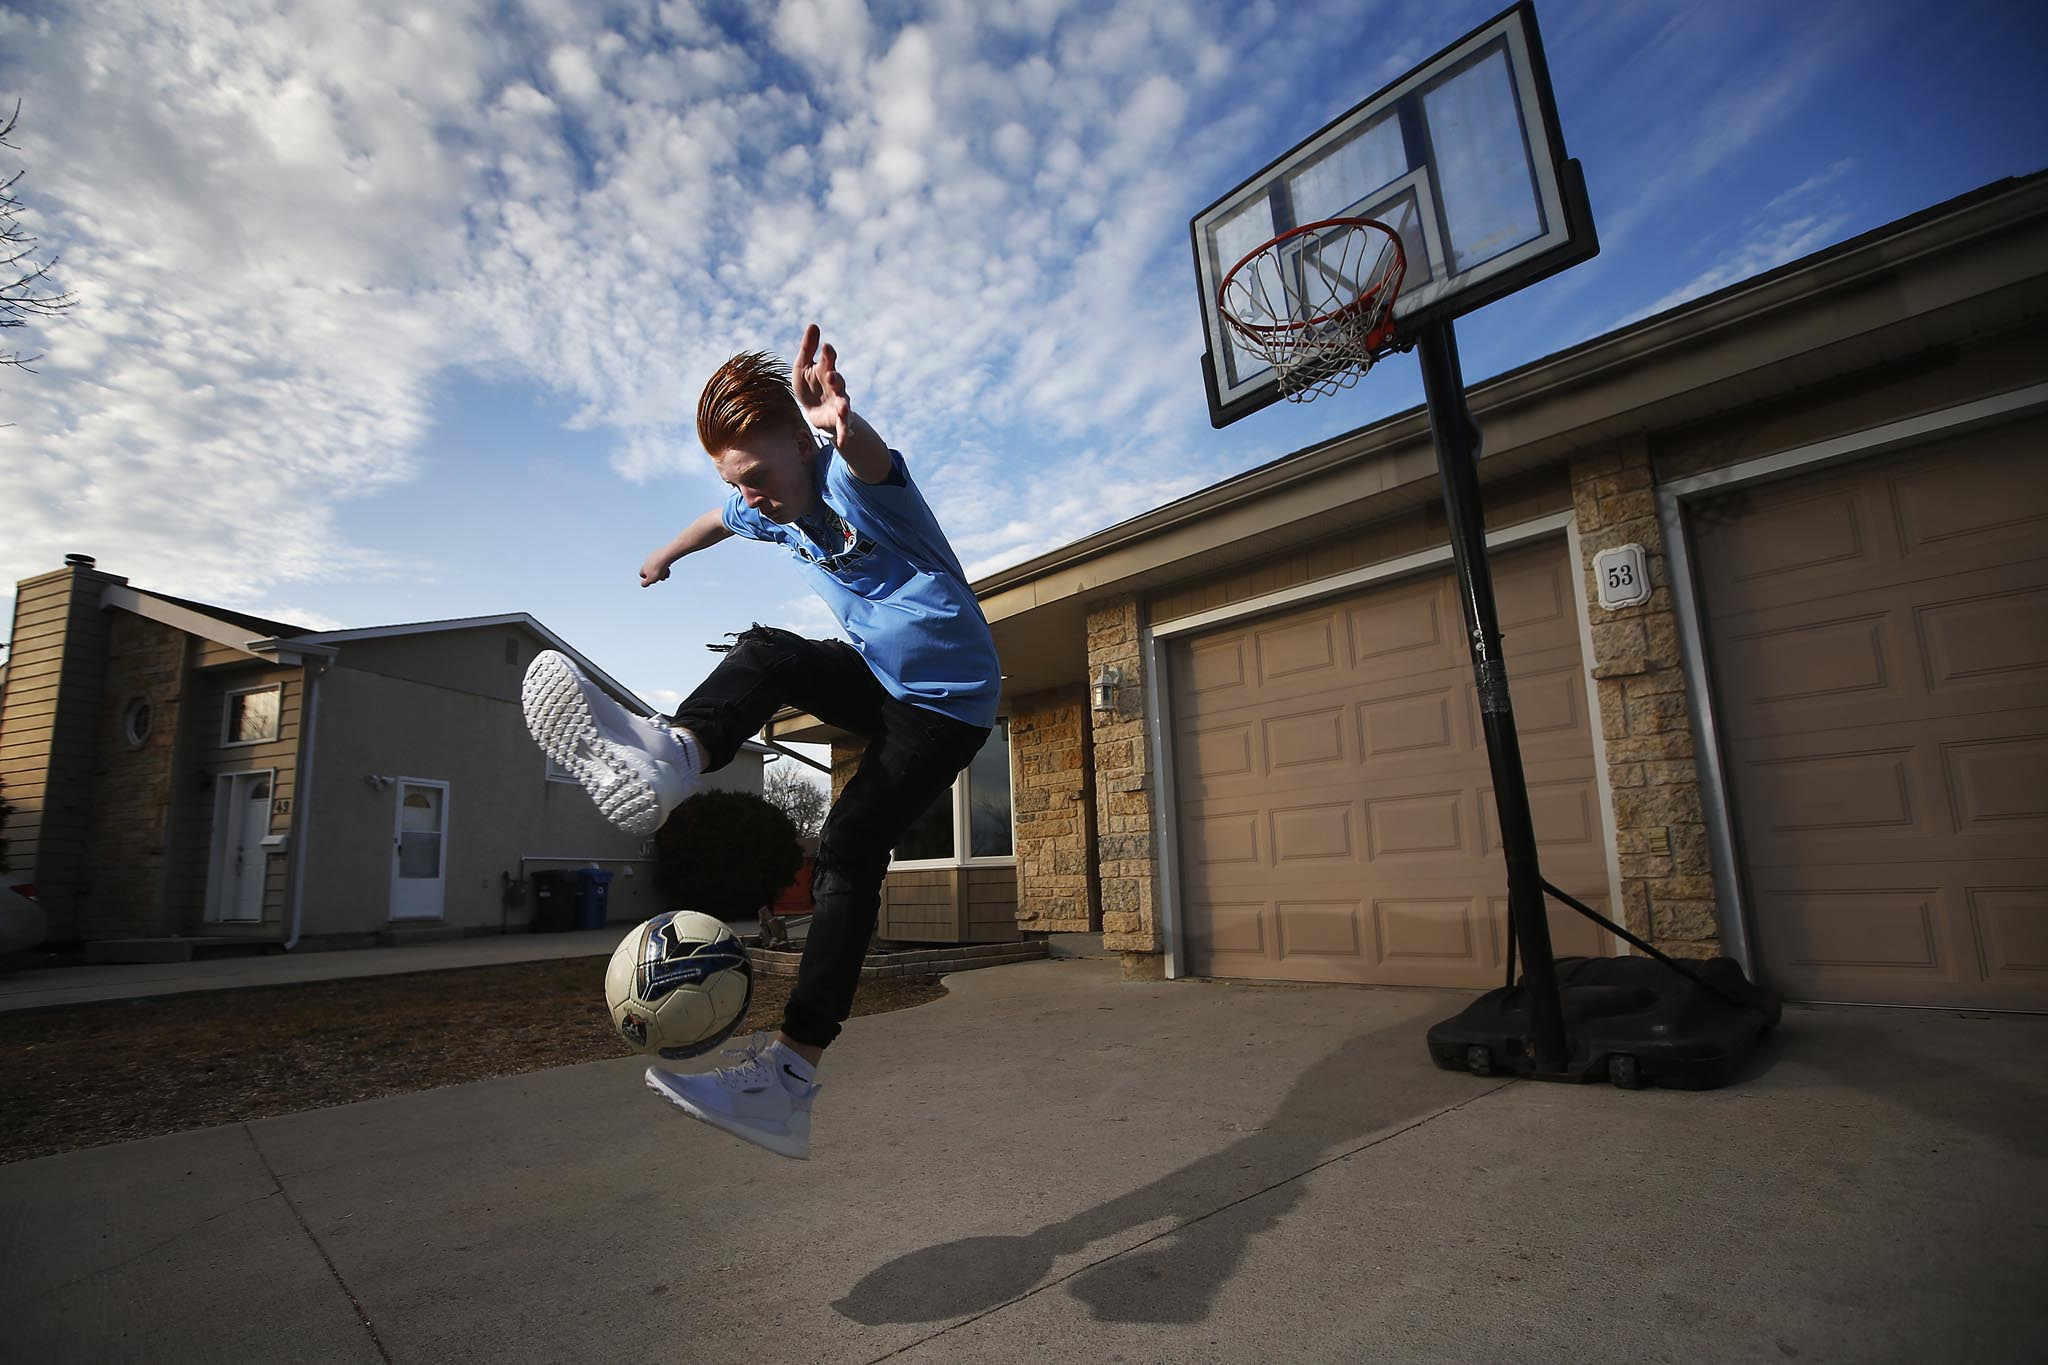 Ethan Hogsden, 15, is an elite soccer player in Winnipeg who normally trains with his Winnipeg Phoenix (under-17) teammates and coaches four times a week in April.